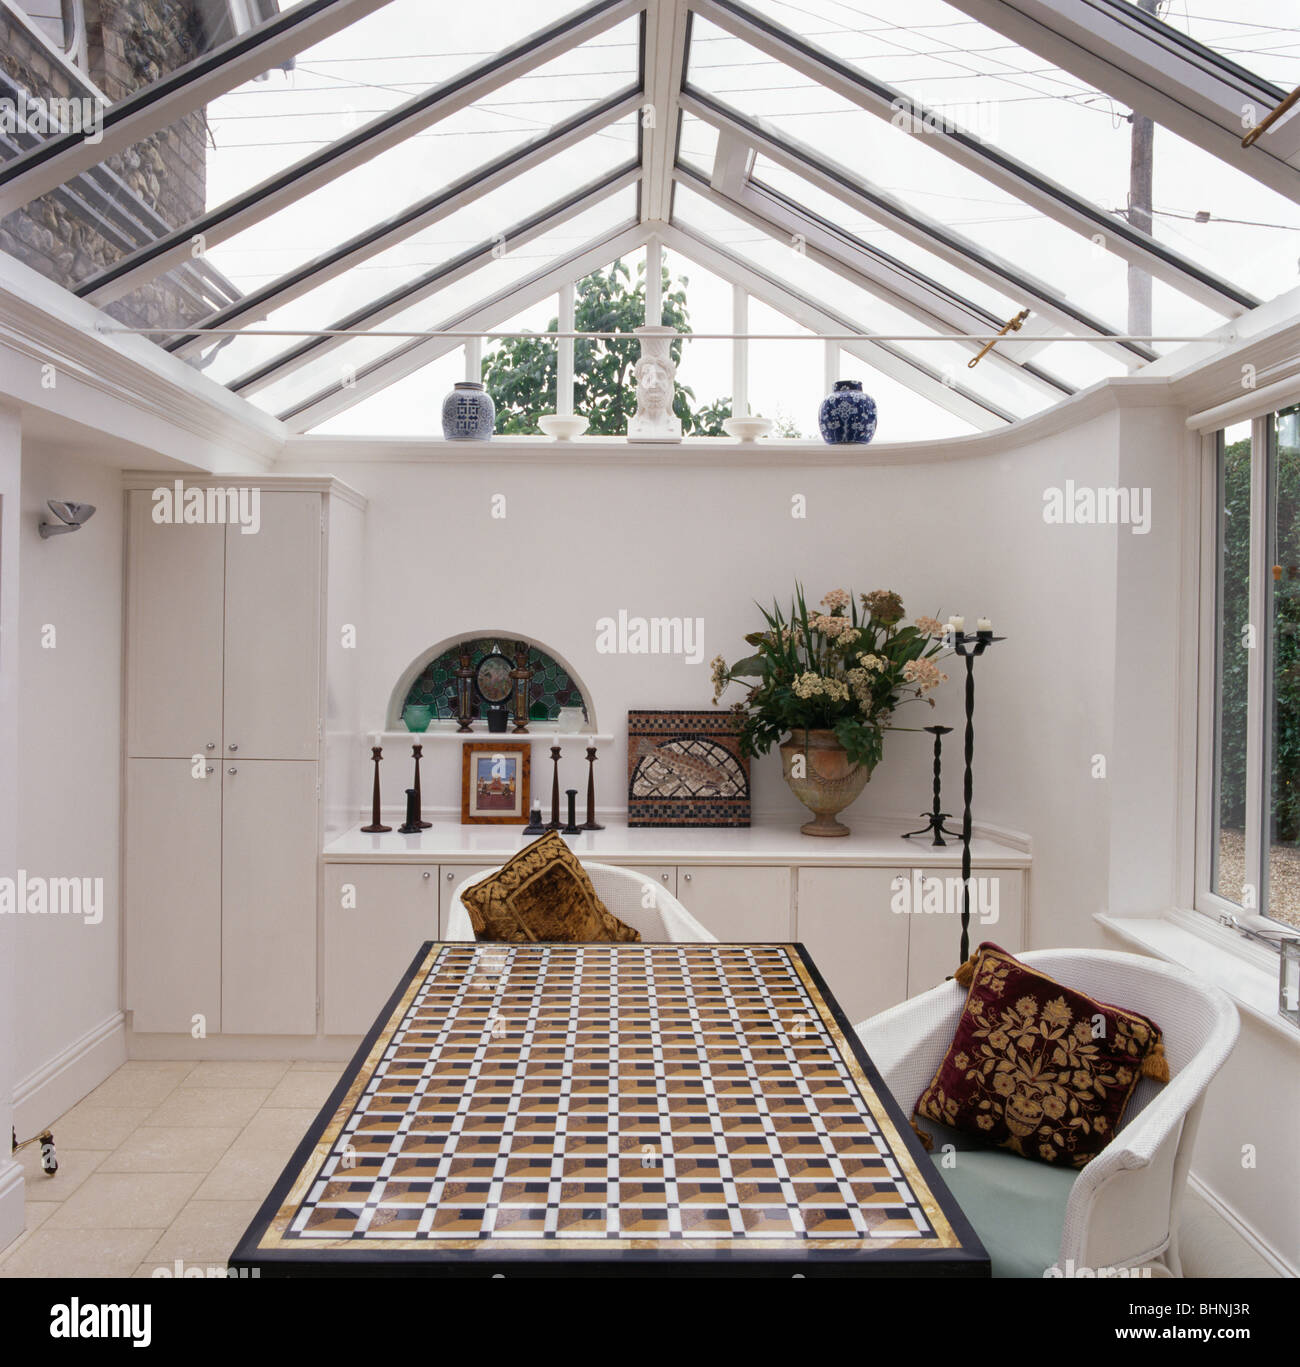 Glass Roof Extension Table With Patterned Top In Dining Room Extension With Glass Roof